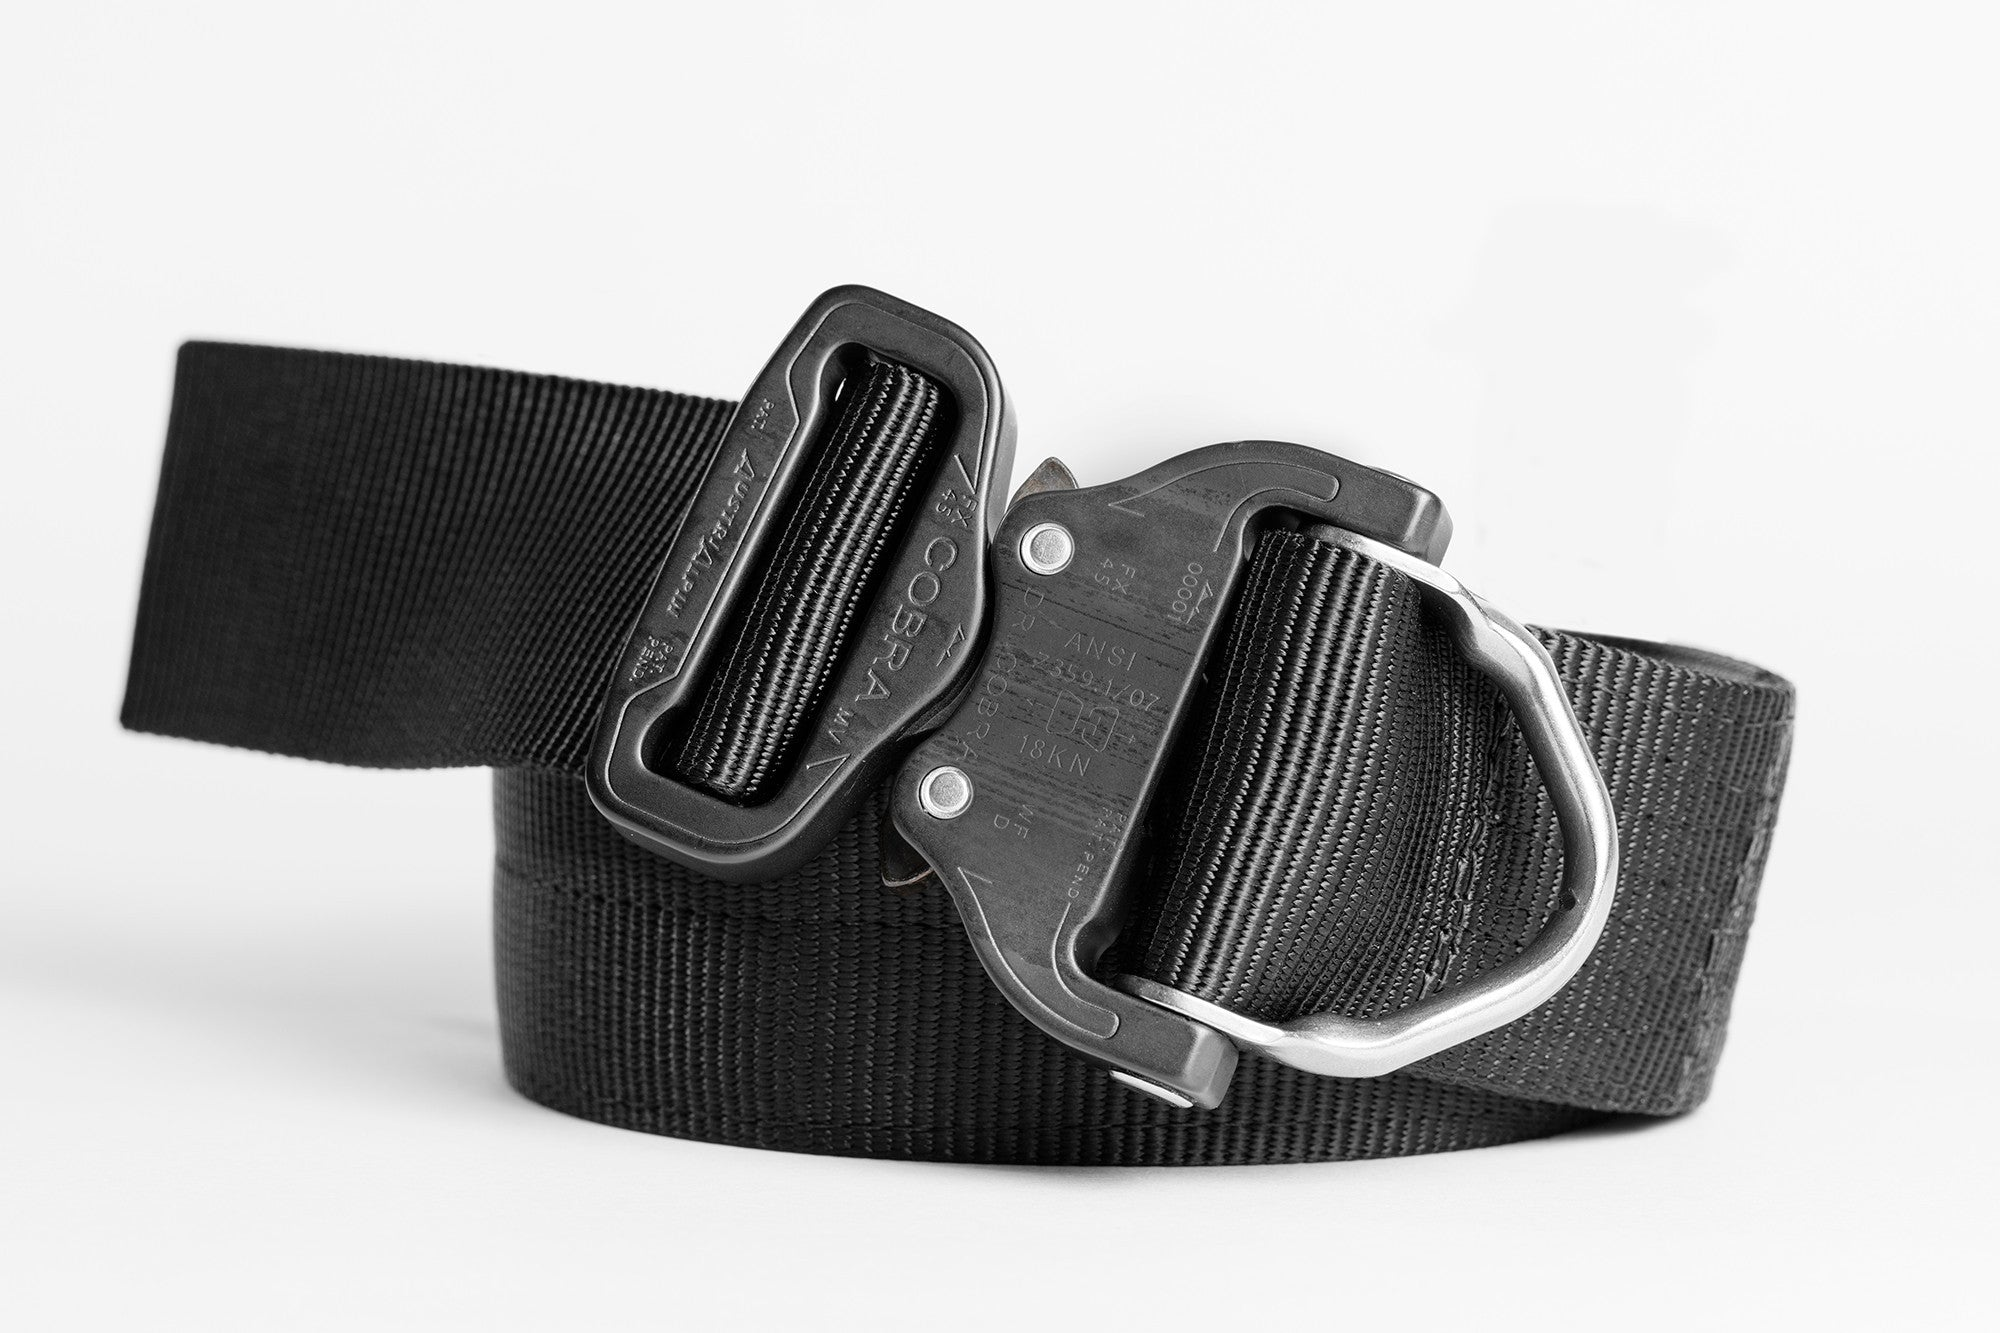 D-Ring Belts – Klik Belts